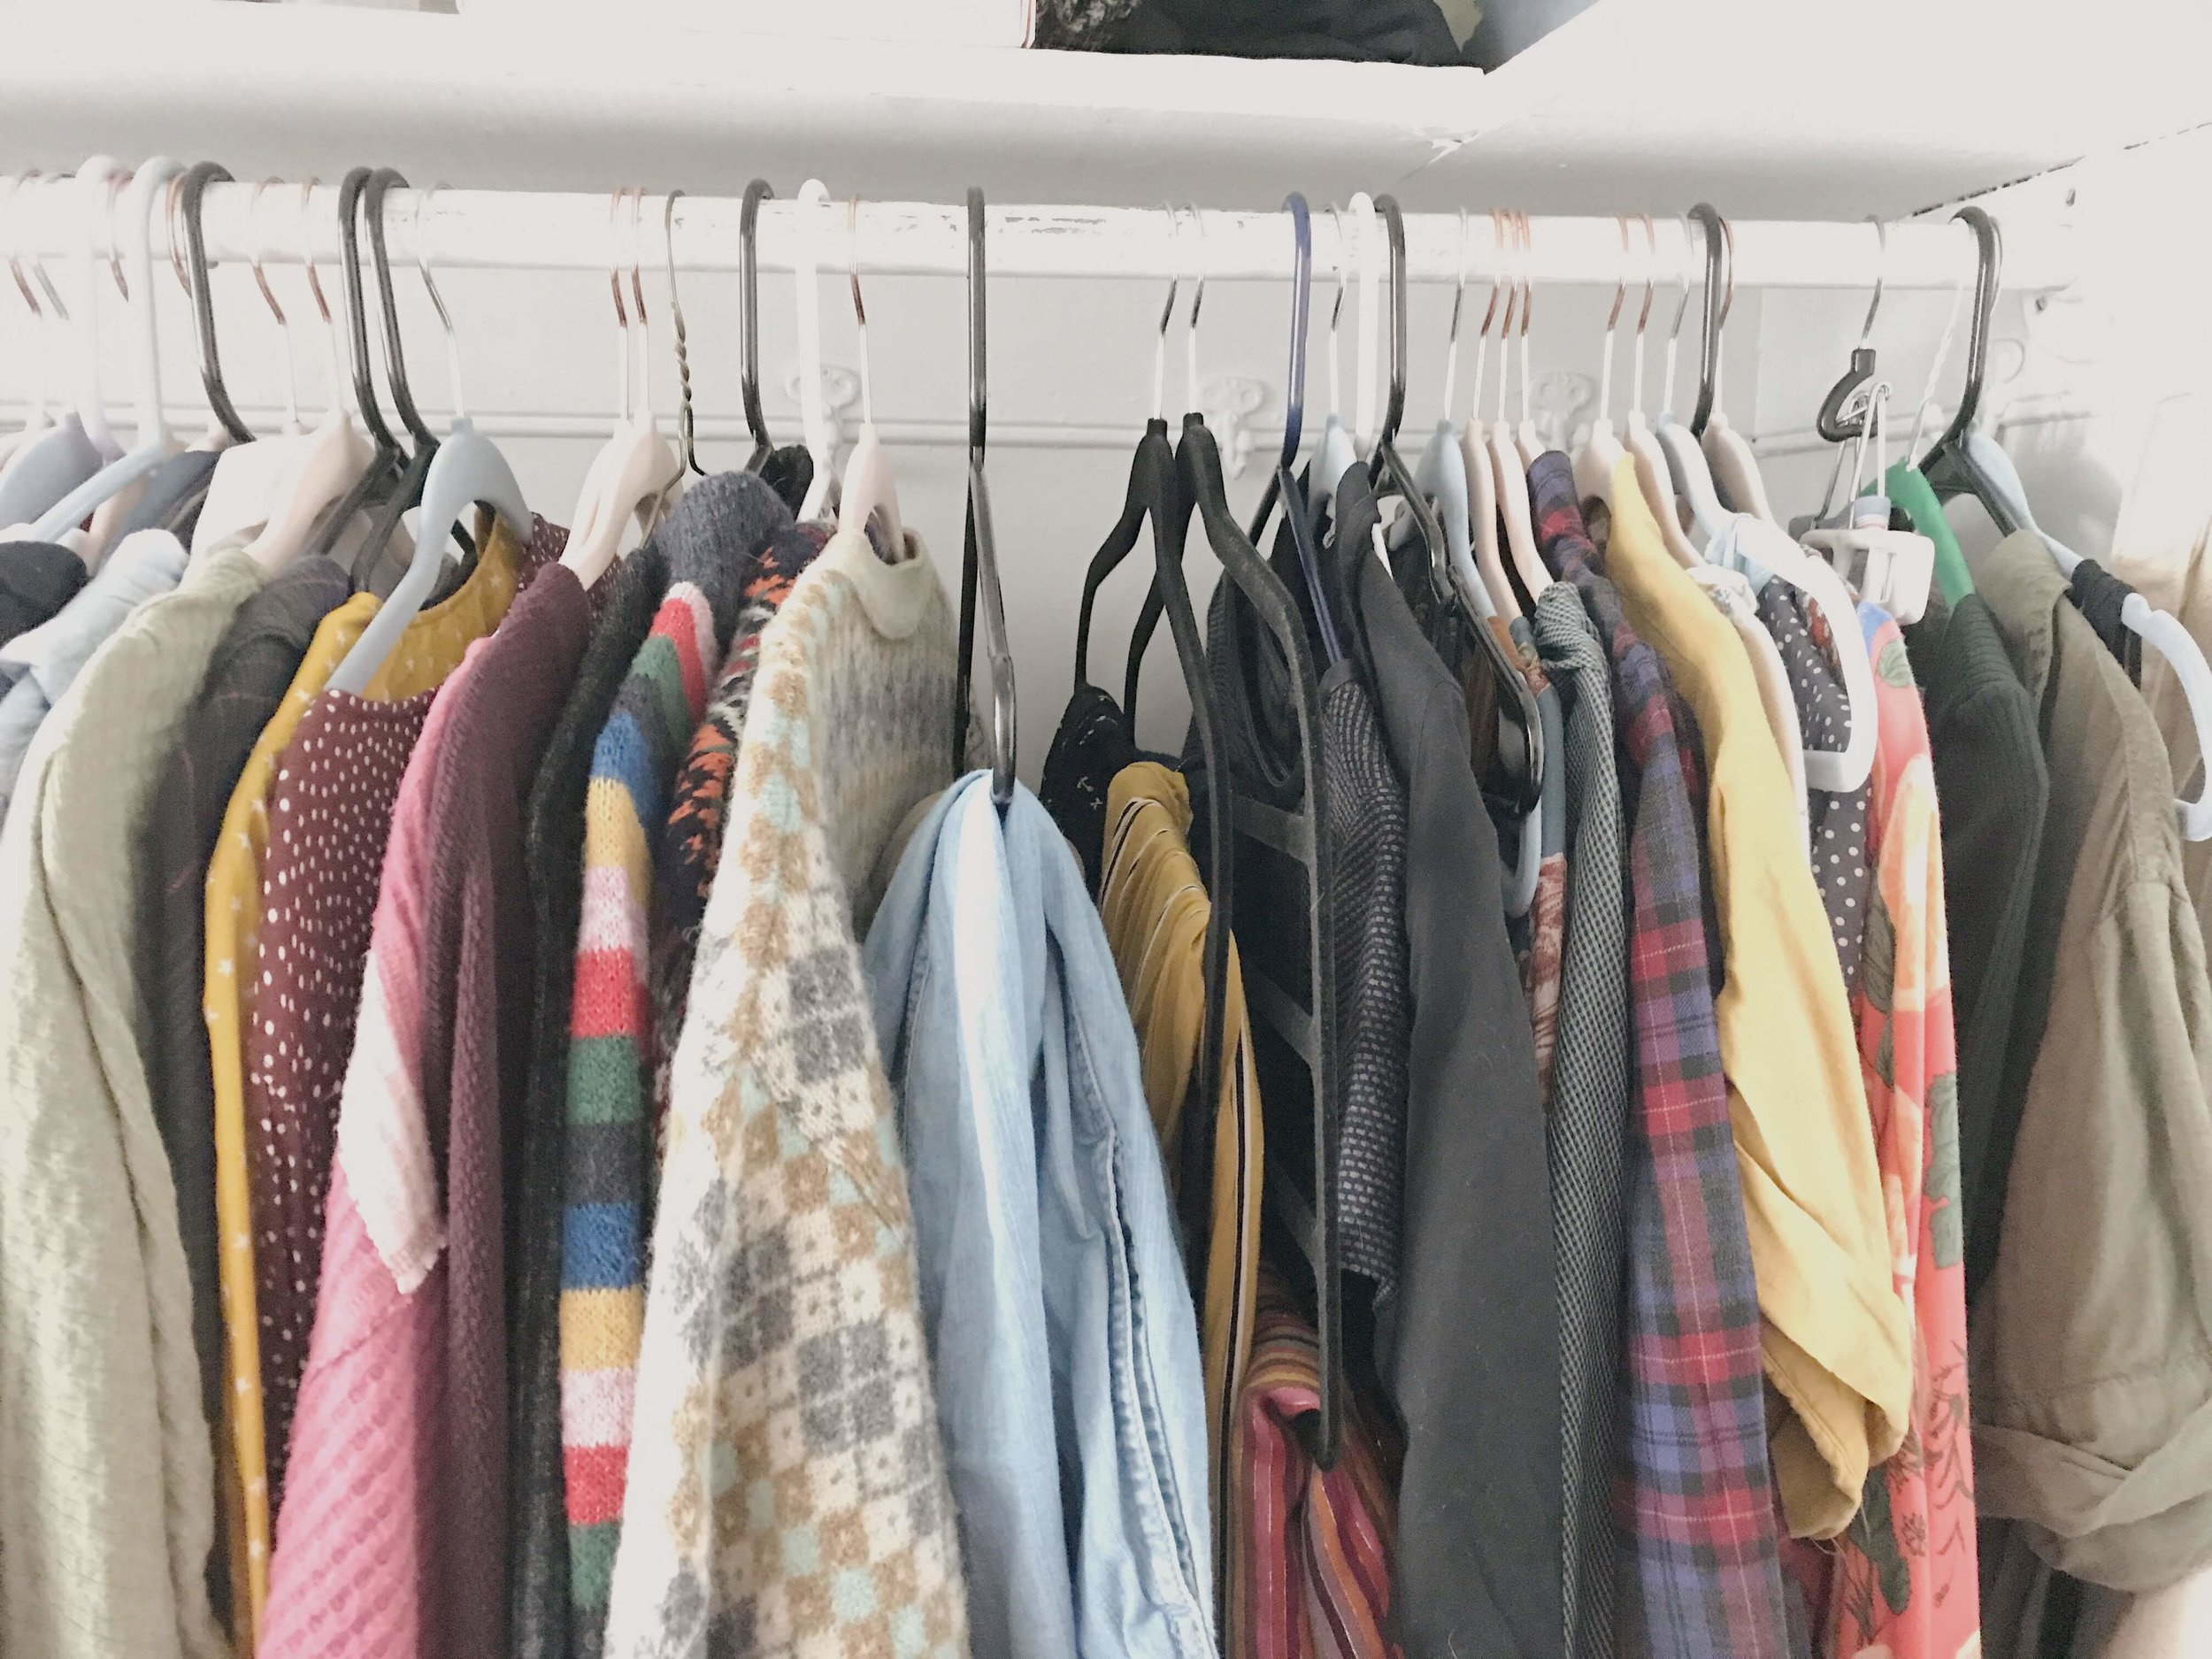 Tops organized by sleeve length, then bottoms, then everything on the right is stuff I wouldn't be able to wear to work.